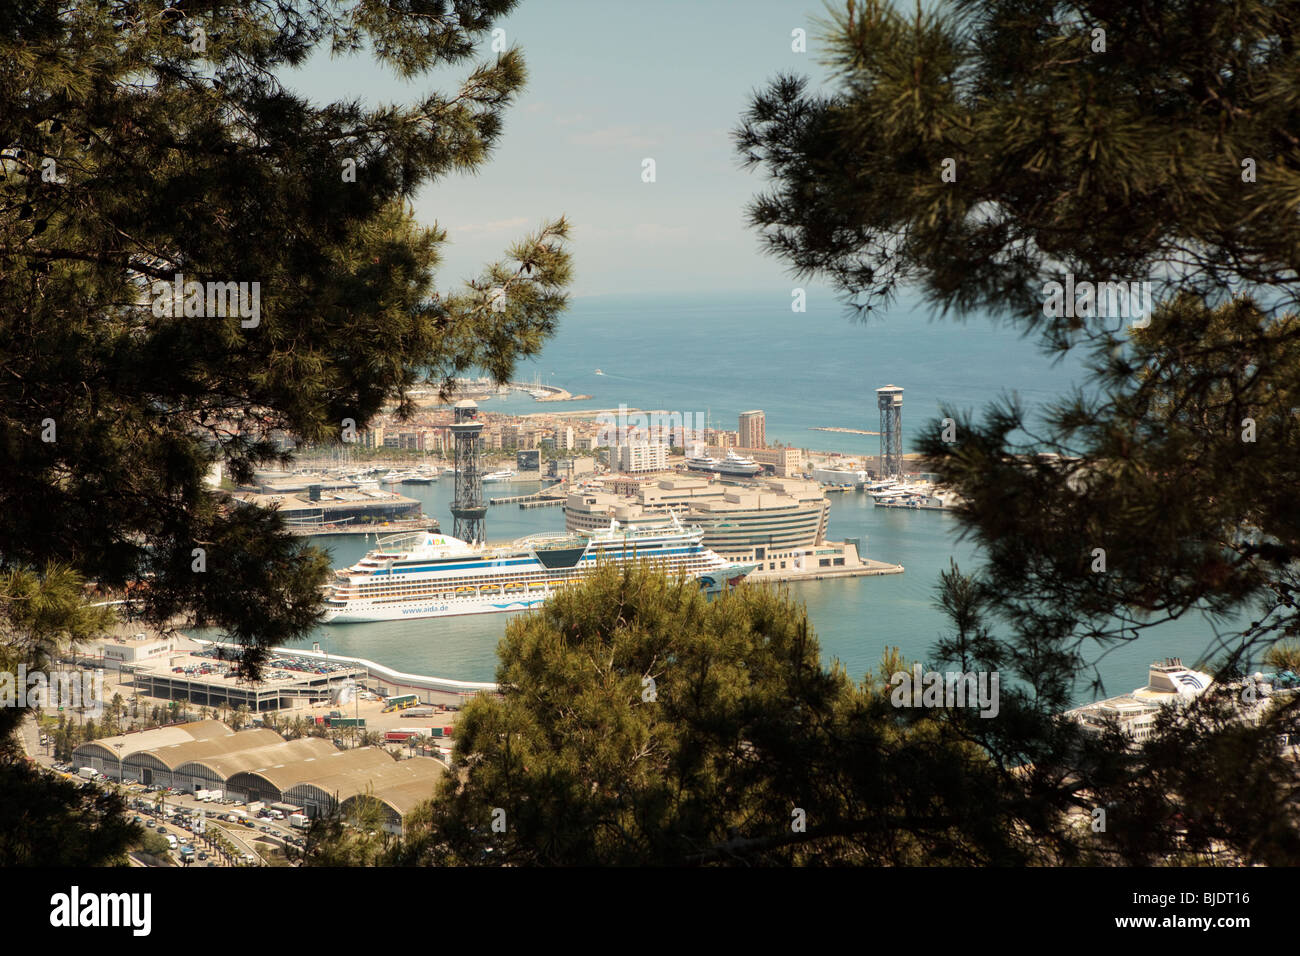 Sea view from Castell de Montjuic old military fortress on Montjuic Mountain Barcelona looking to docks. - Stock Image